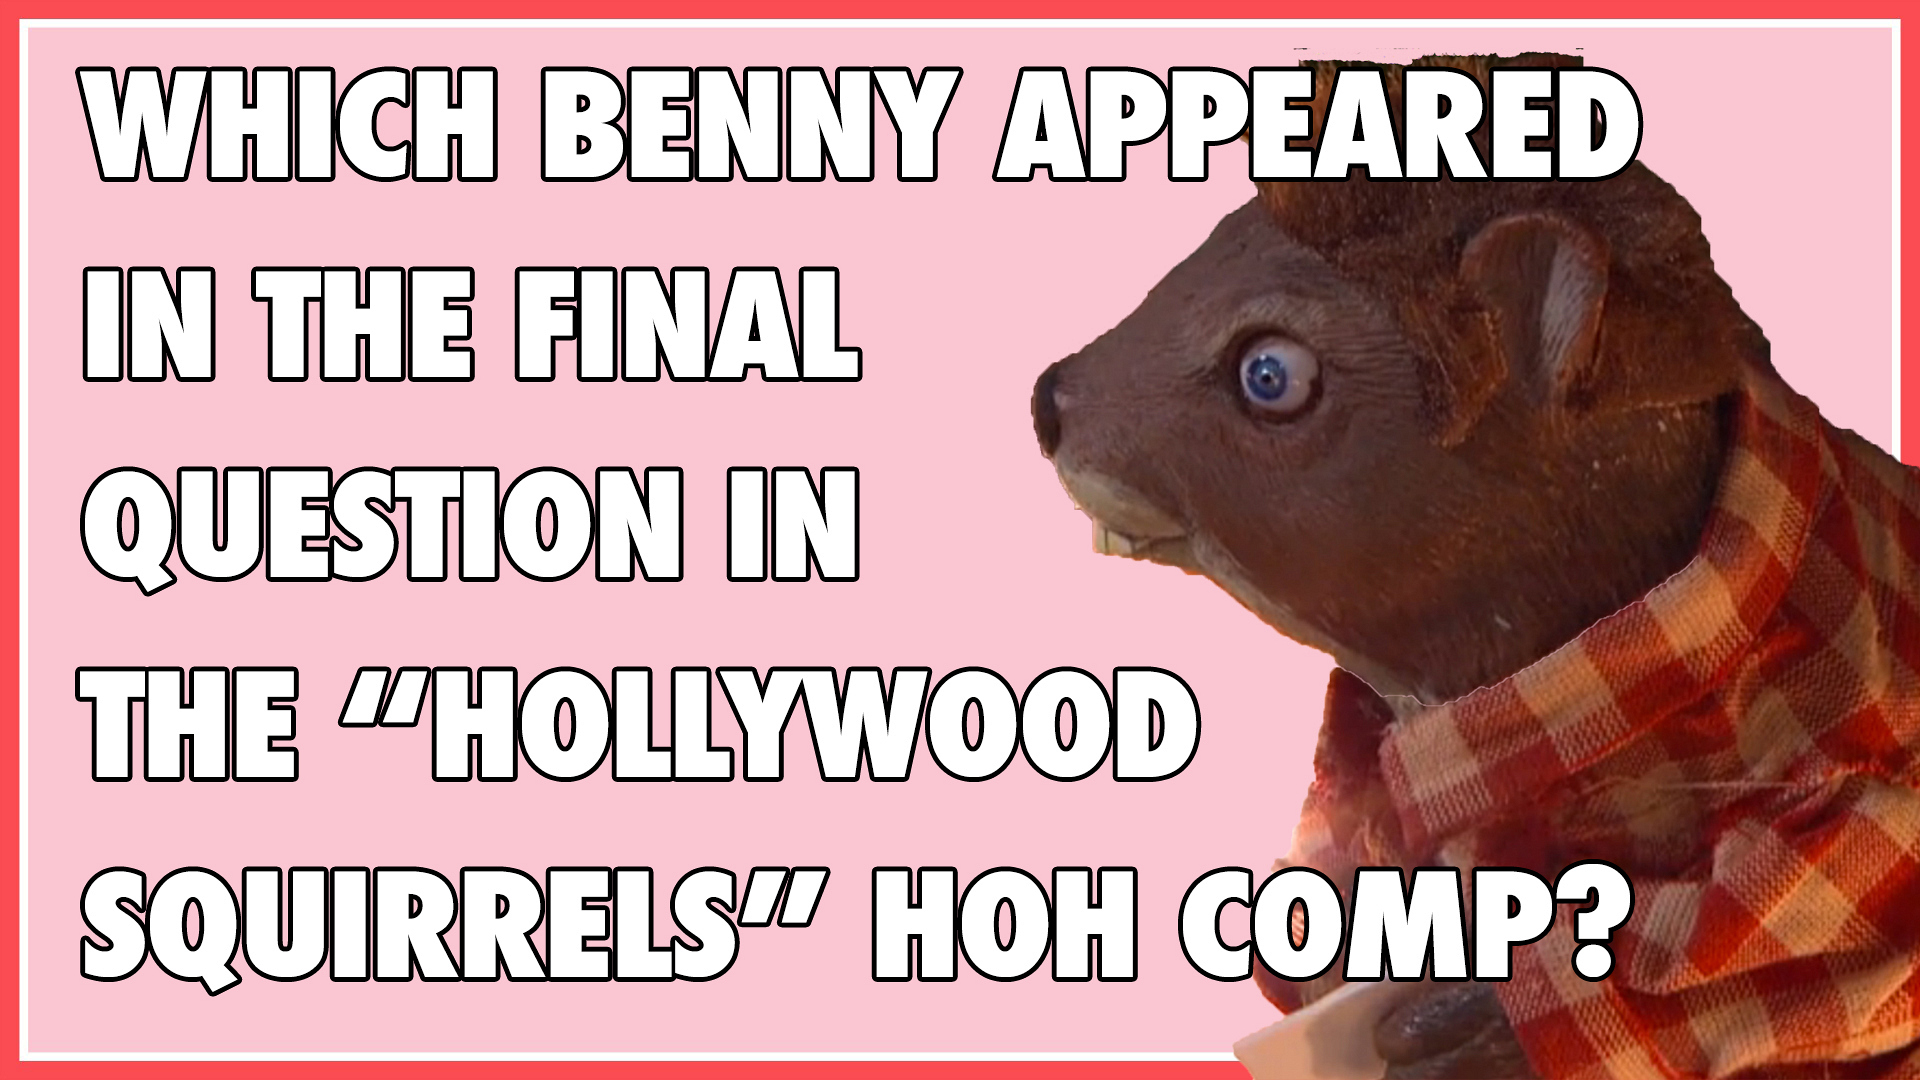 "Which Benny appeared in the final question in the ""Hollywood Squirrels"" HOH comp?"